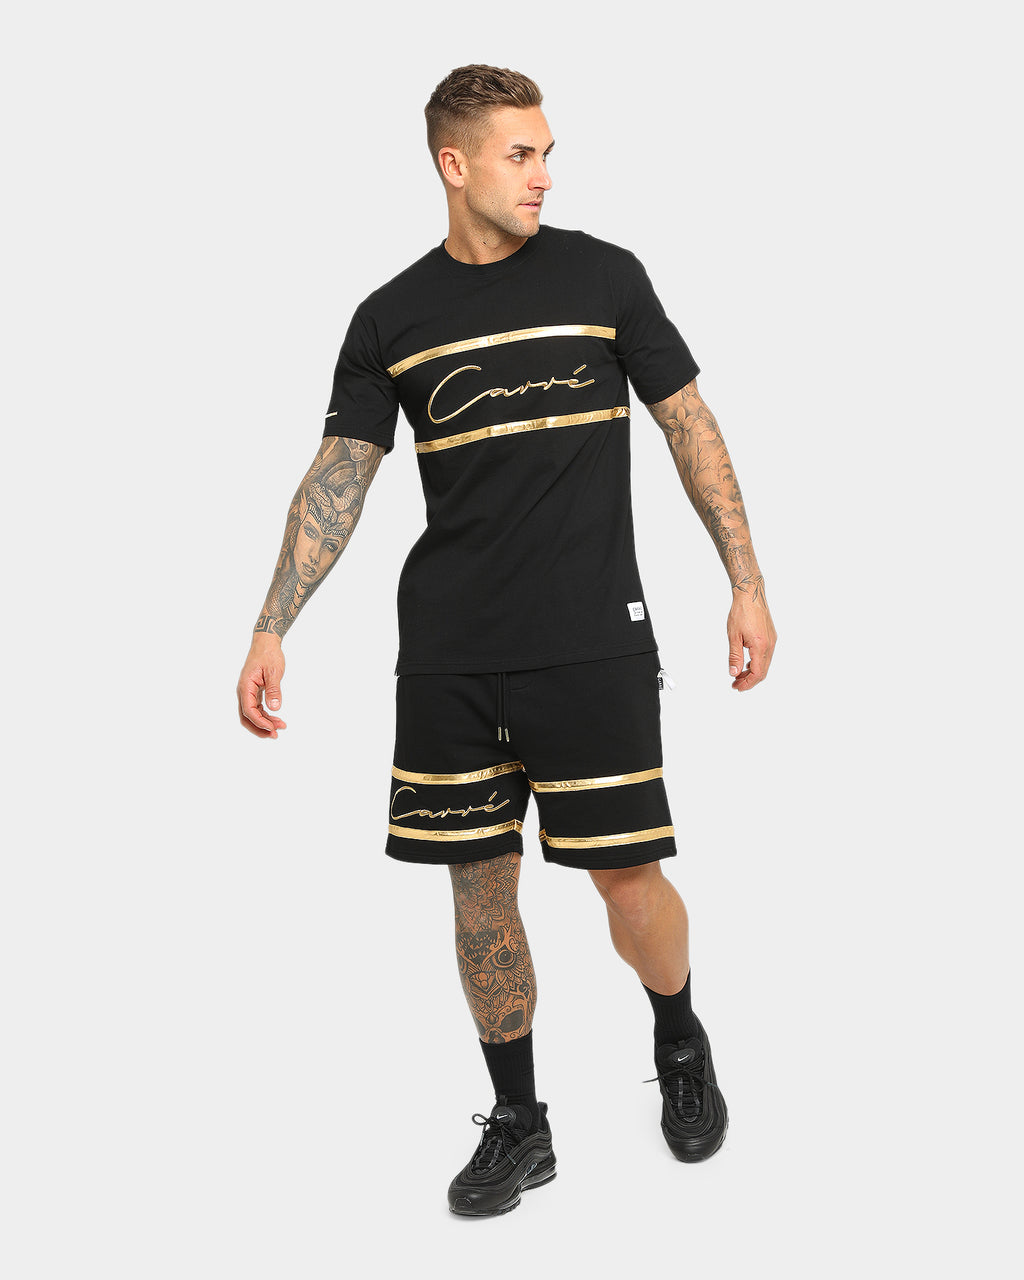 Carré Men's Scripted Classique Short Sleeve T-Shirt Black/Gold